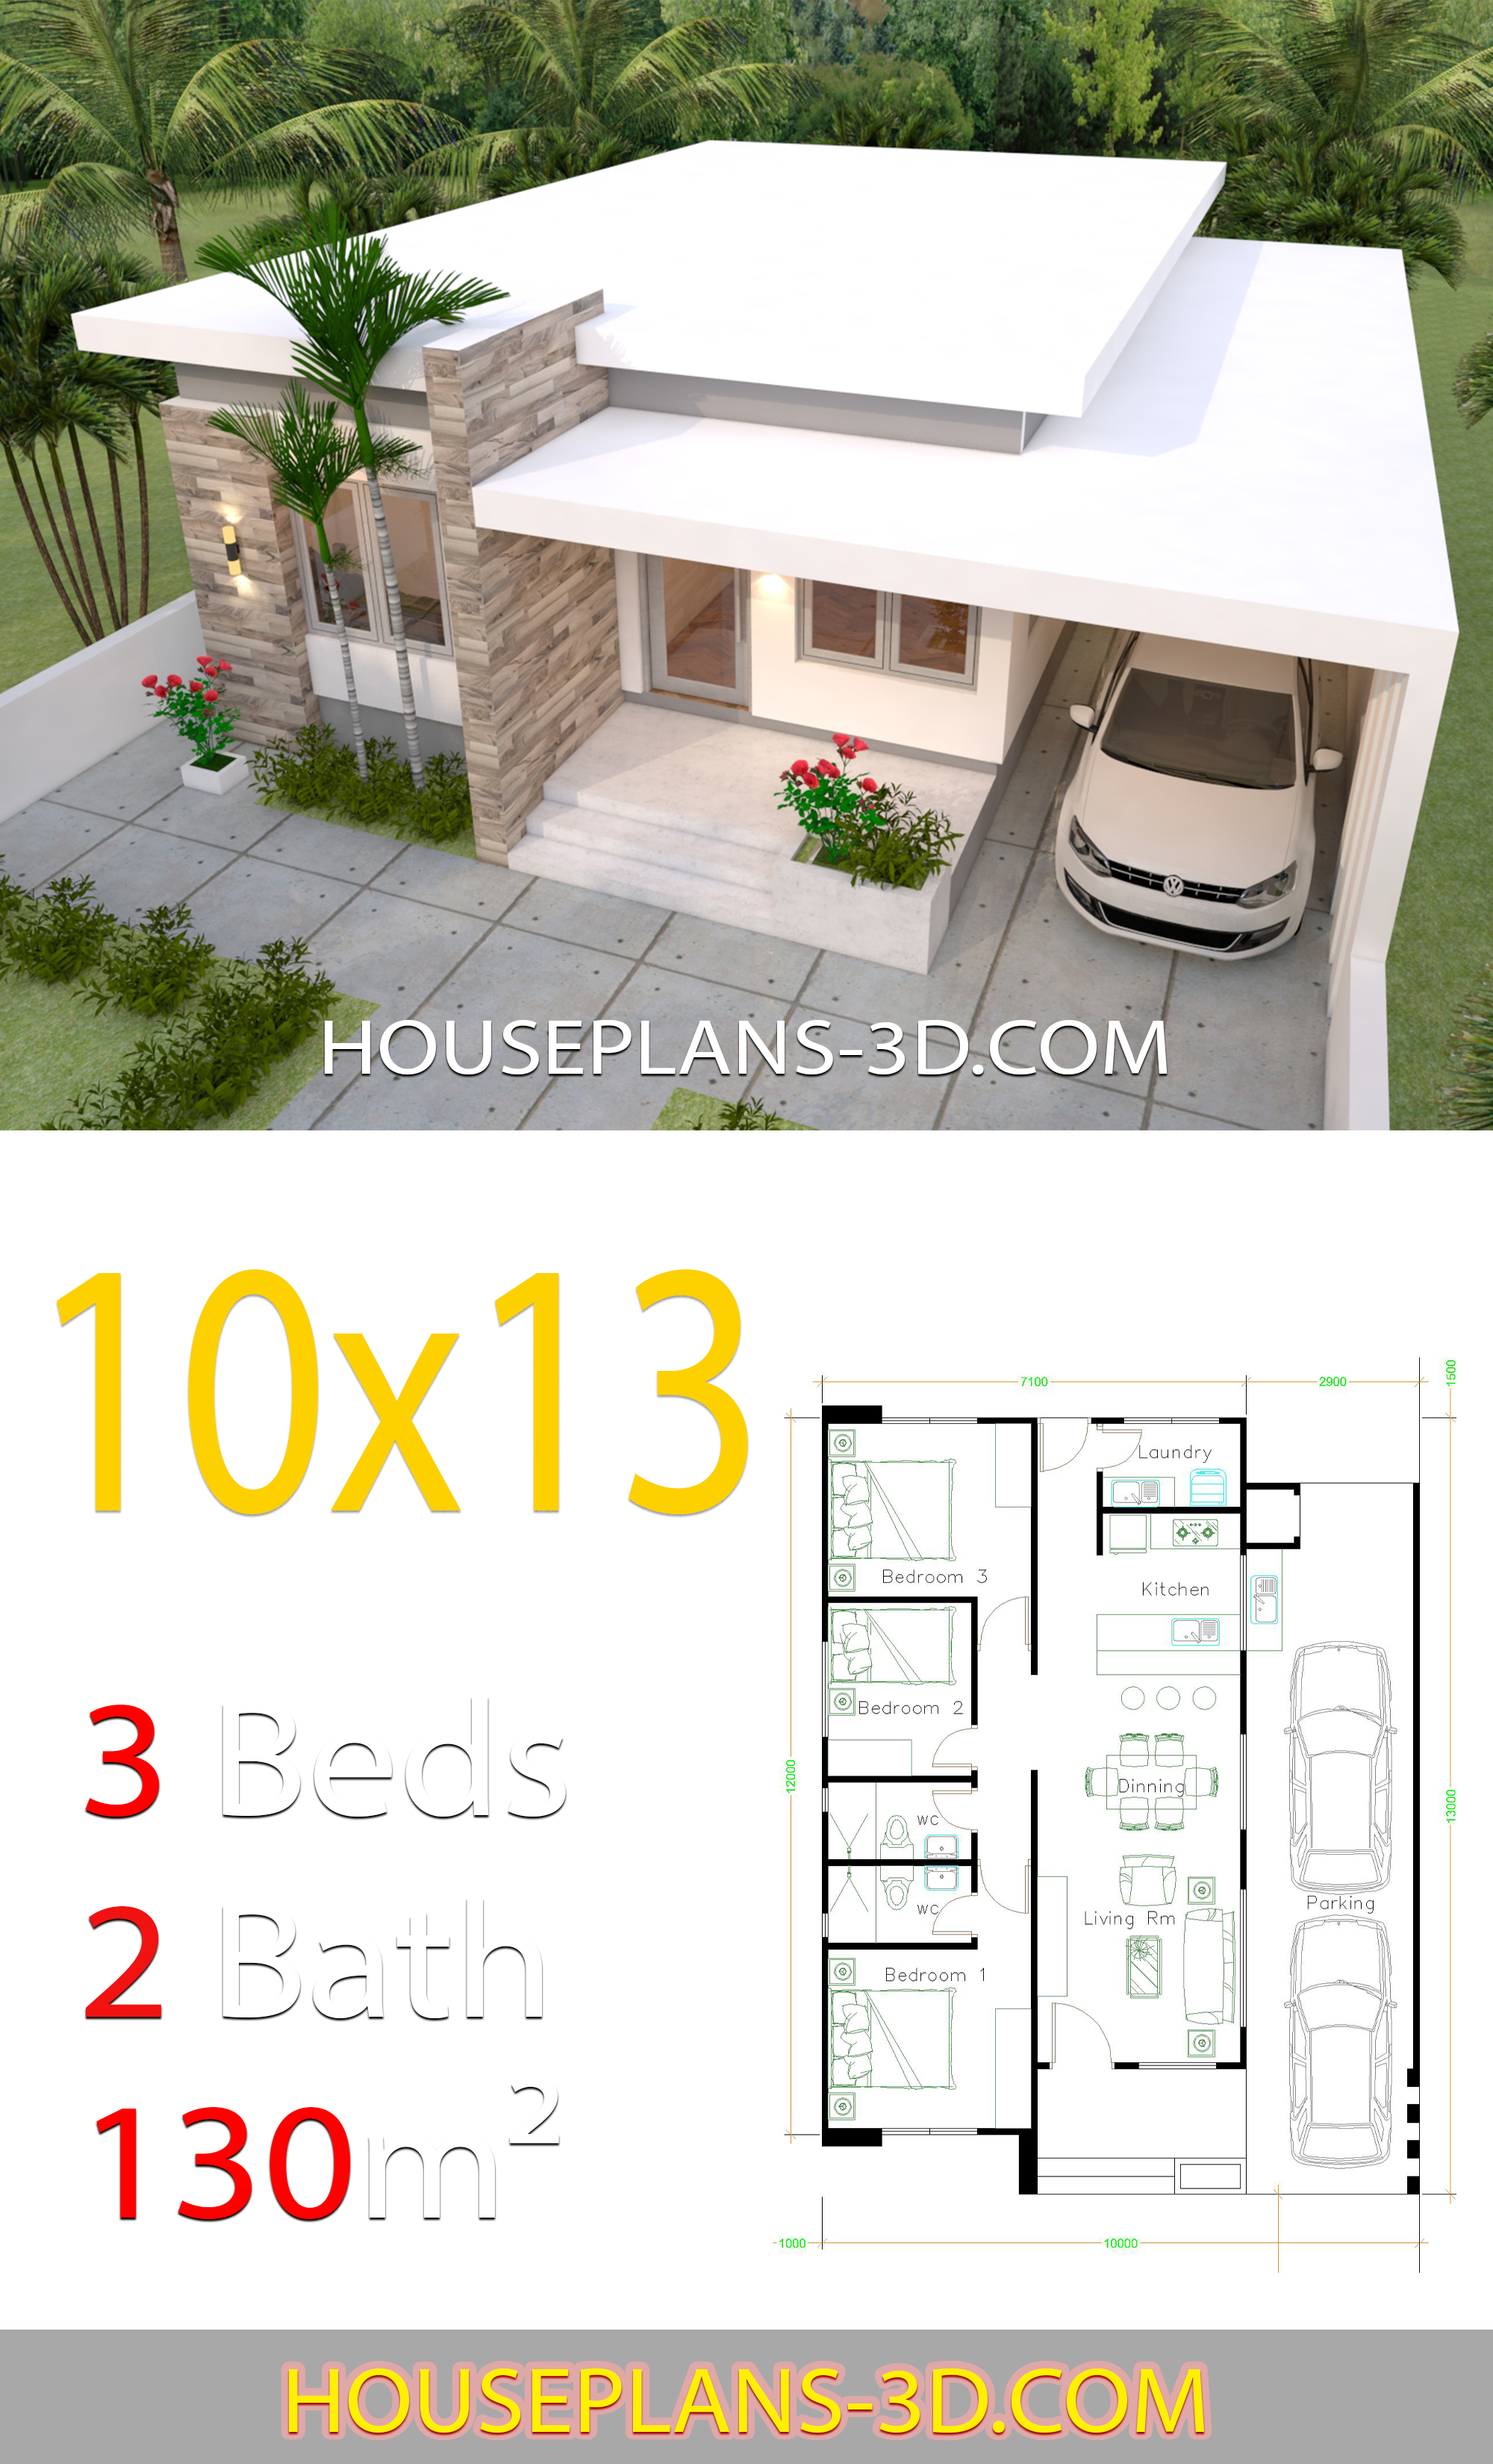 House Design 10x13 with 3 Bedrooms Full Plans - House Plans 3D